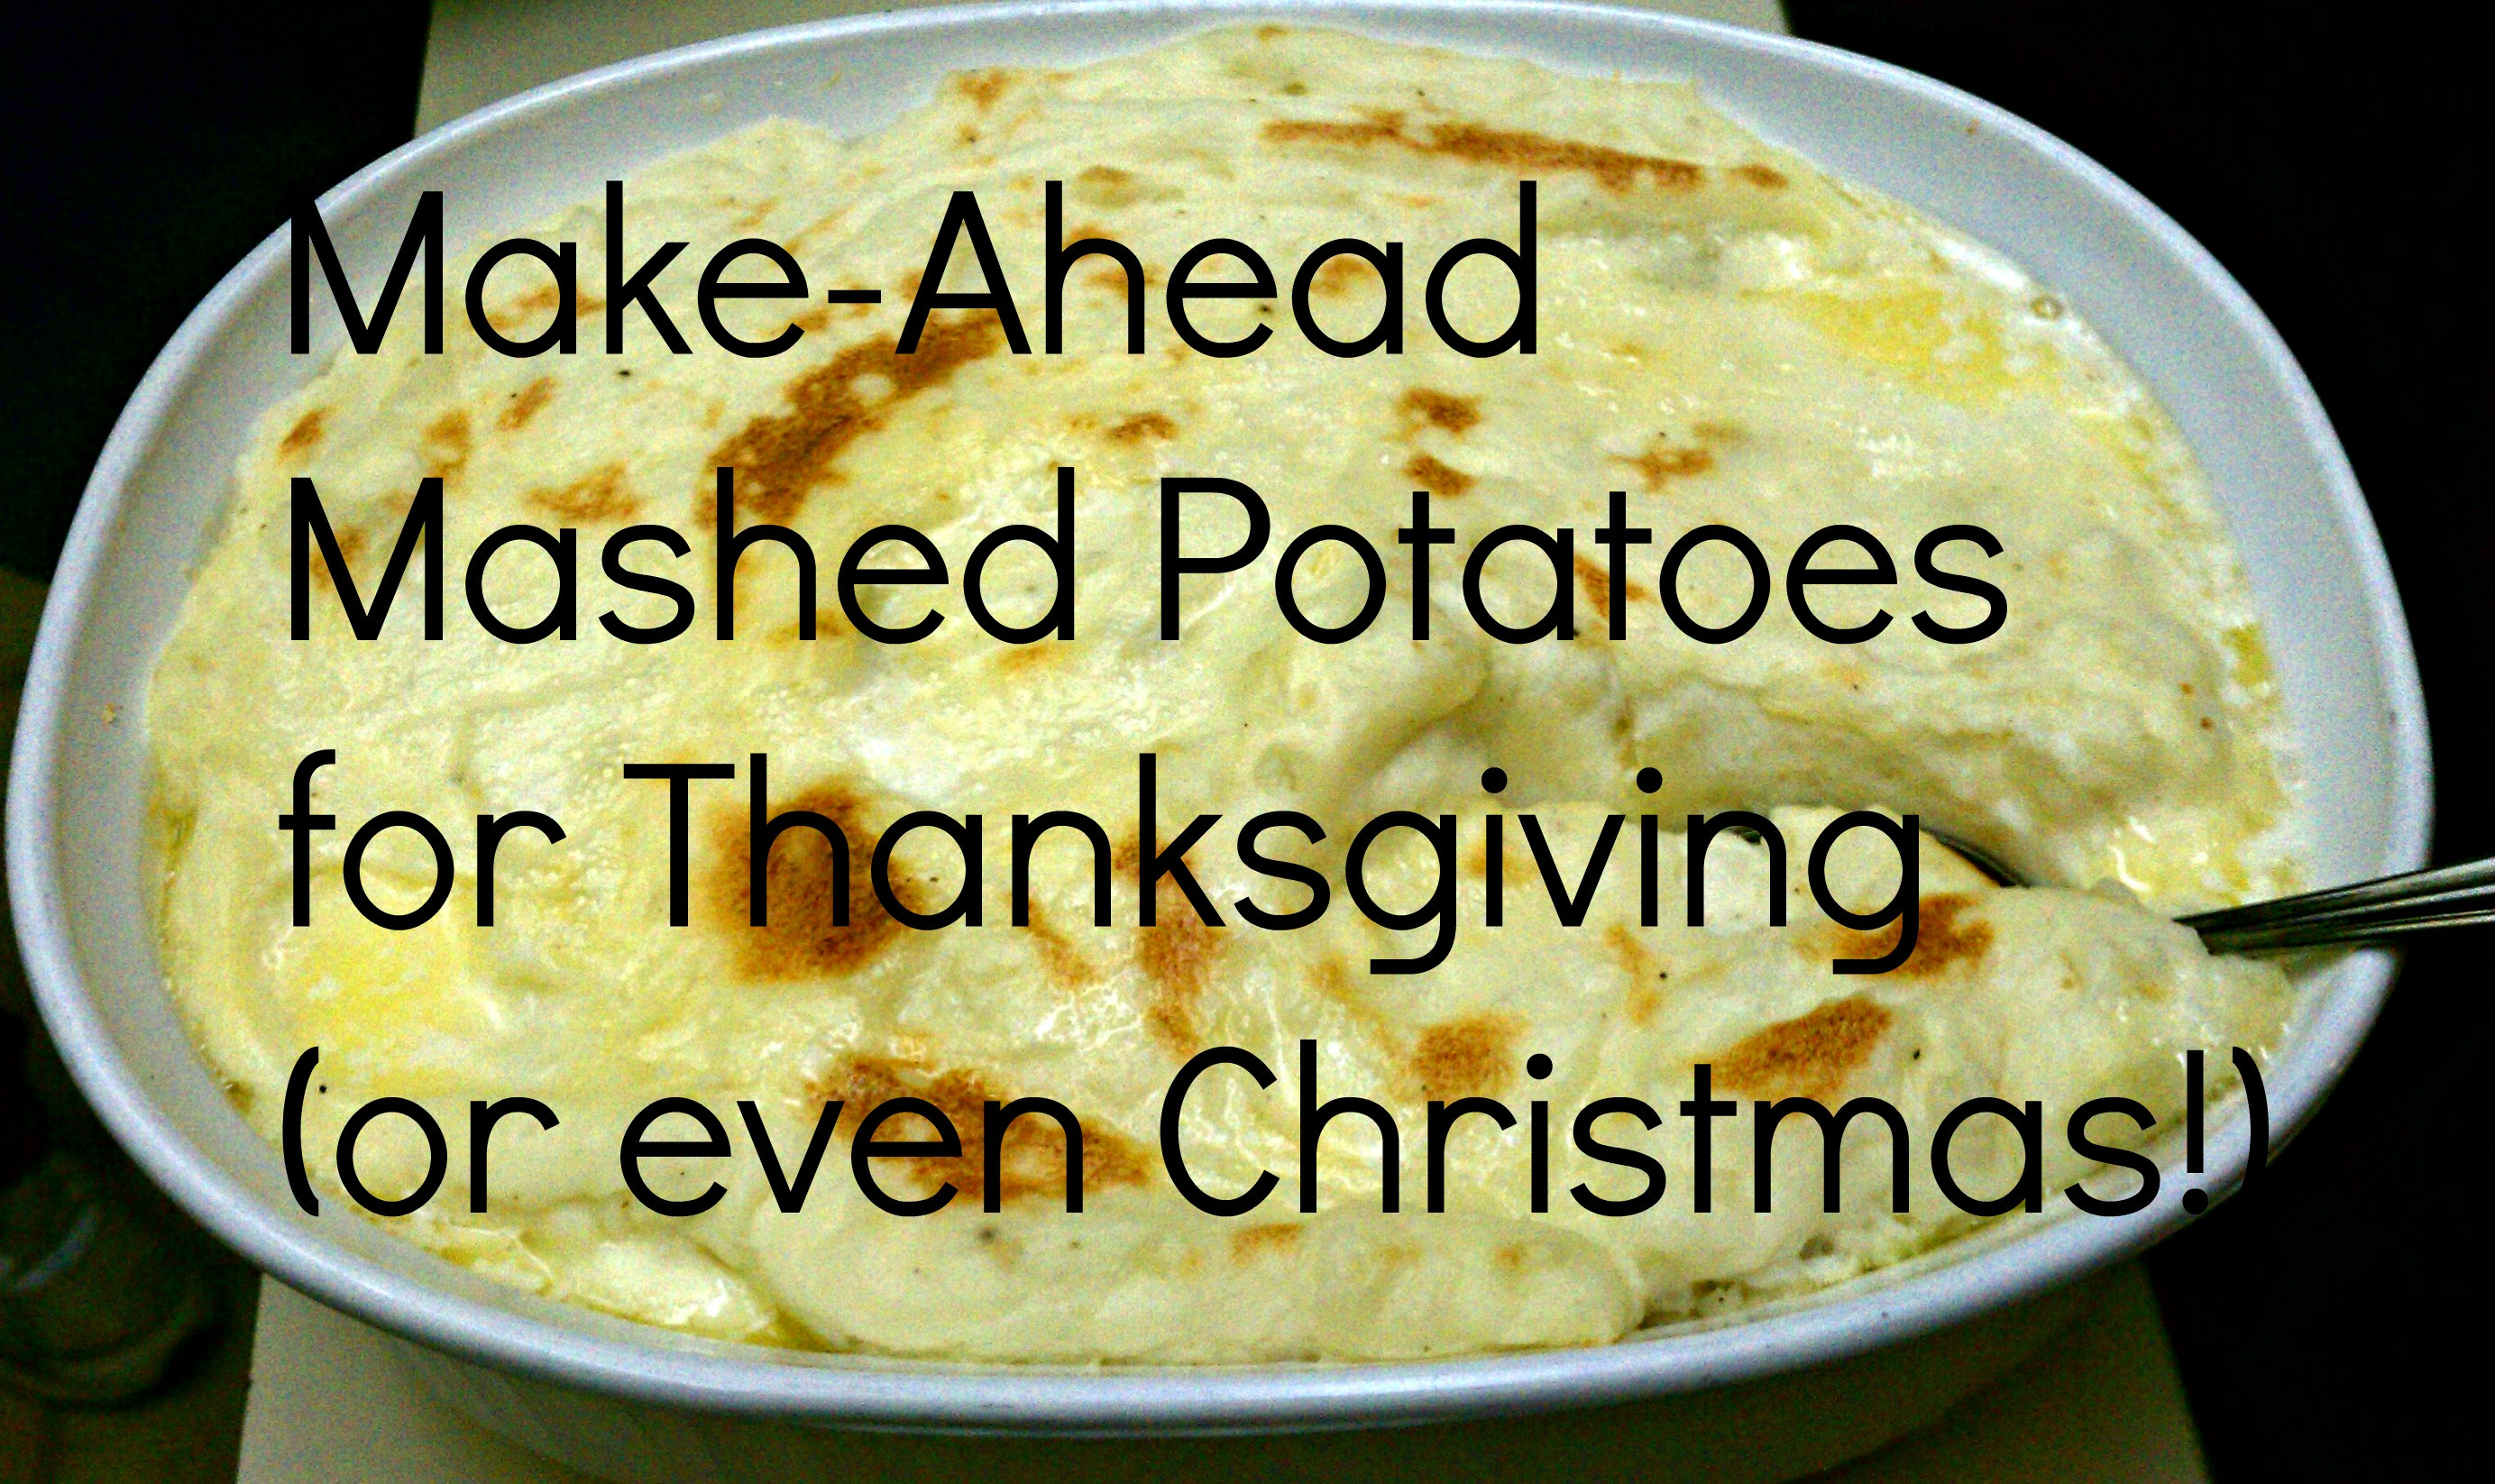 Mashed Potatoes For Thanksgiving  How To Freeze Mashed Potatoes Now For Thanksgiving